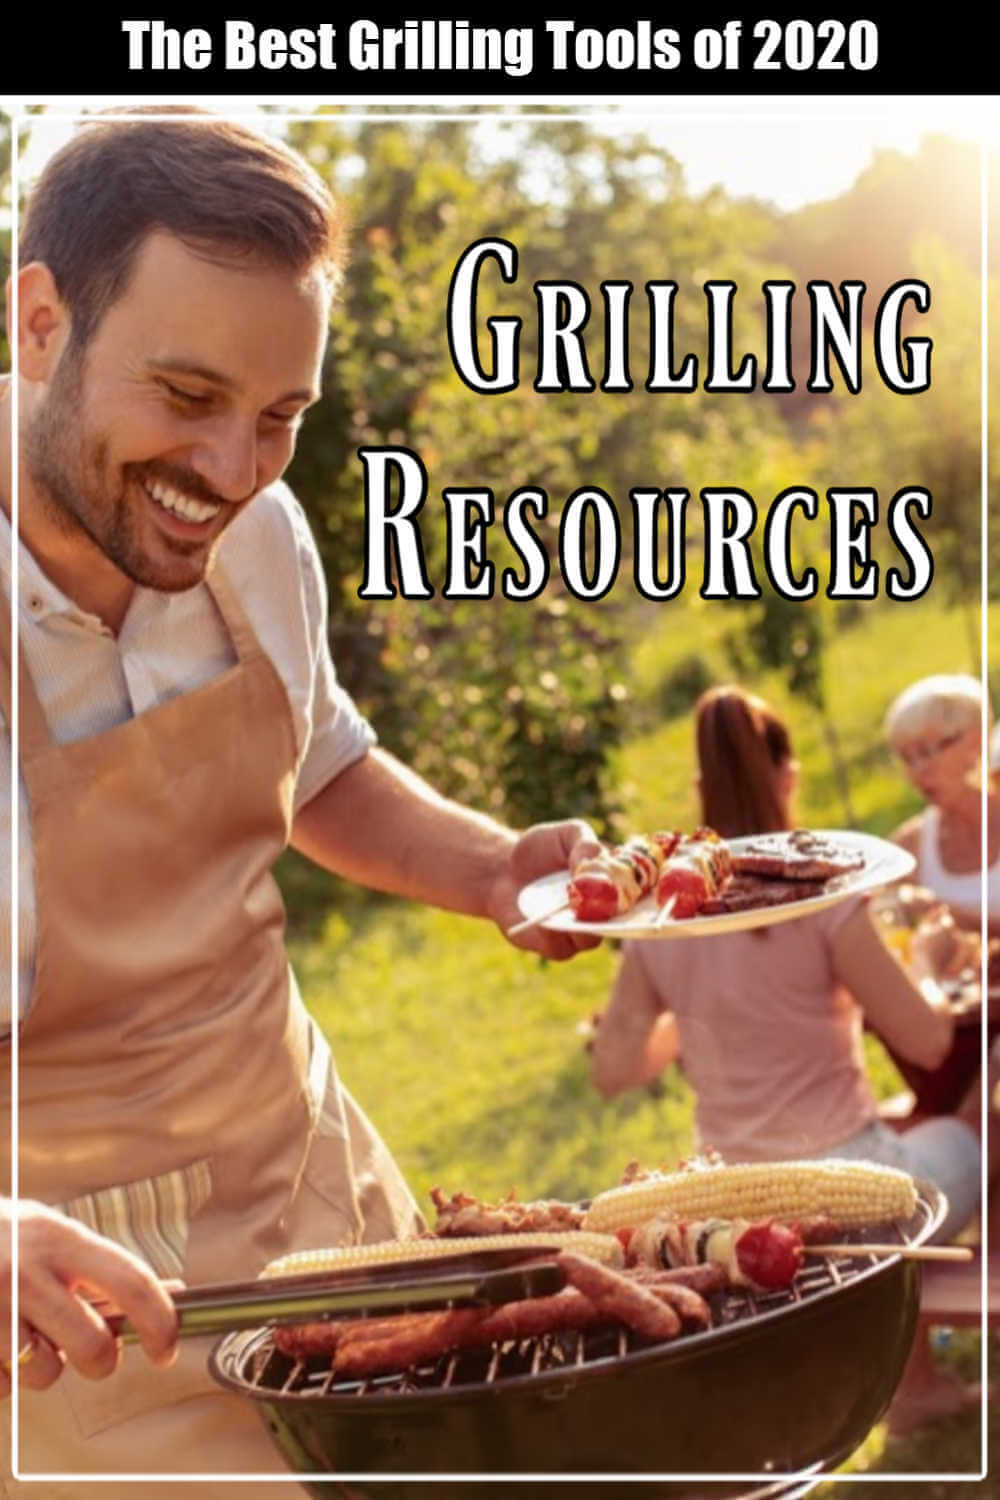 Grilling Resources